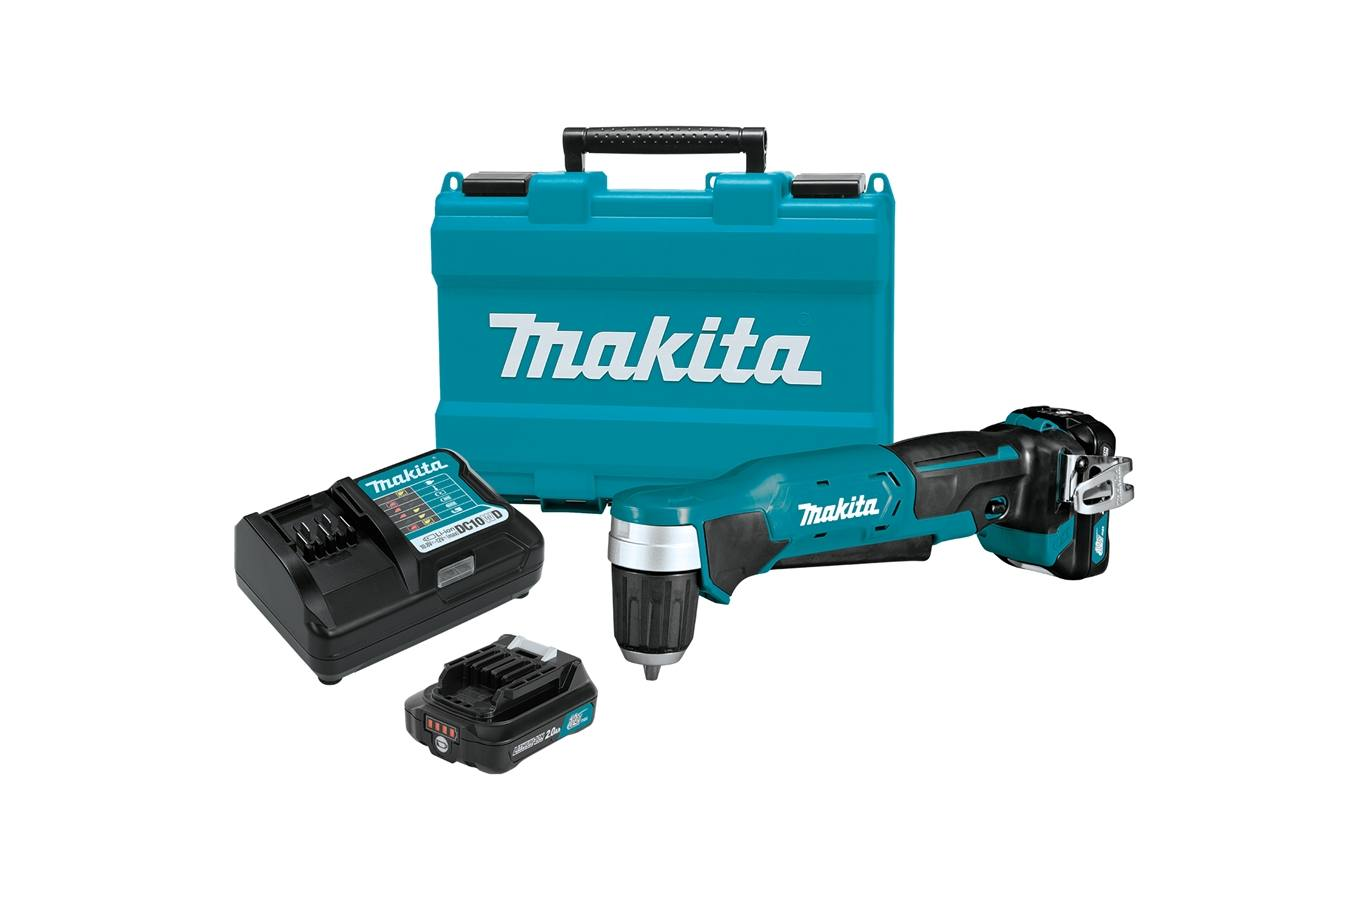 2019 Makita AD04R1 for sale in Hopkinsville, KY. Lawn Cutters ... on ingersoll rand drill diagram, power drill diagram, bosch drill diagram, hammer drill diagram, drill bit diagram, black and decker drill diagram, drill press diagram, milwaukee drill diagram, hilti drill diagram, pillar drill diagram, drill chuck diagram,